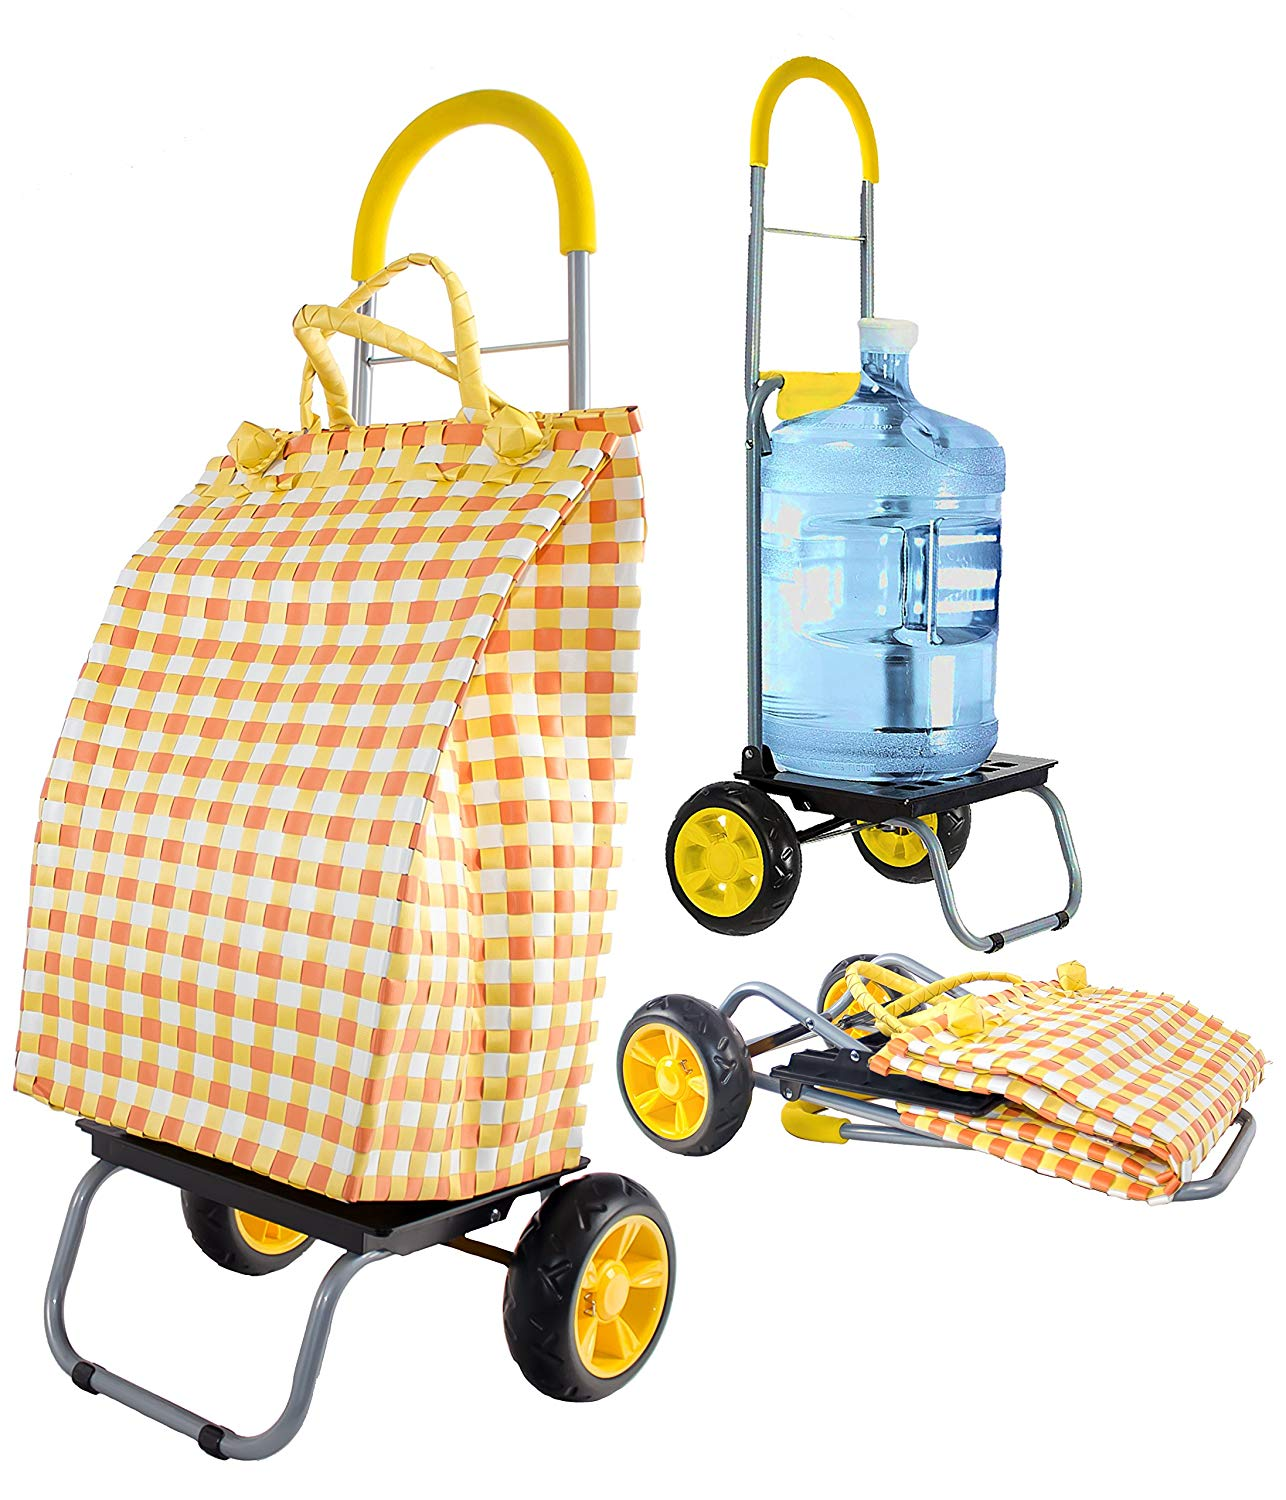 dbest products Trolley Dolly Basket Weave Tote